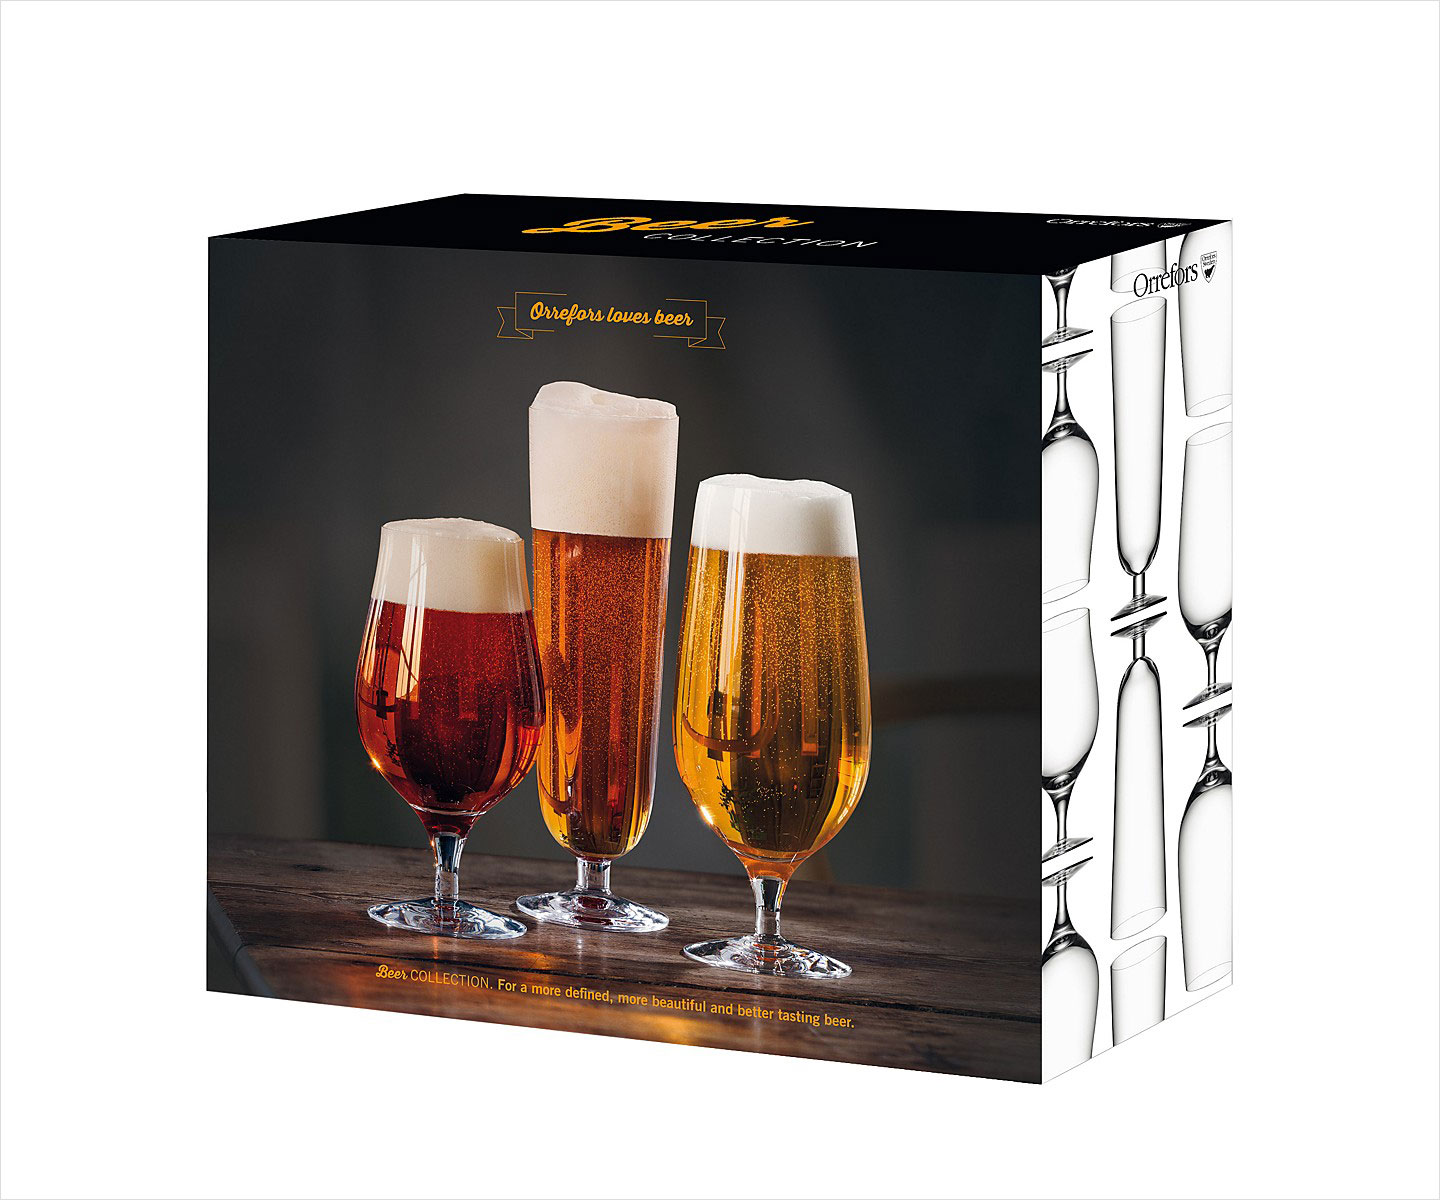 Orrefors beer collection glasses valentine's day gift ideas for him